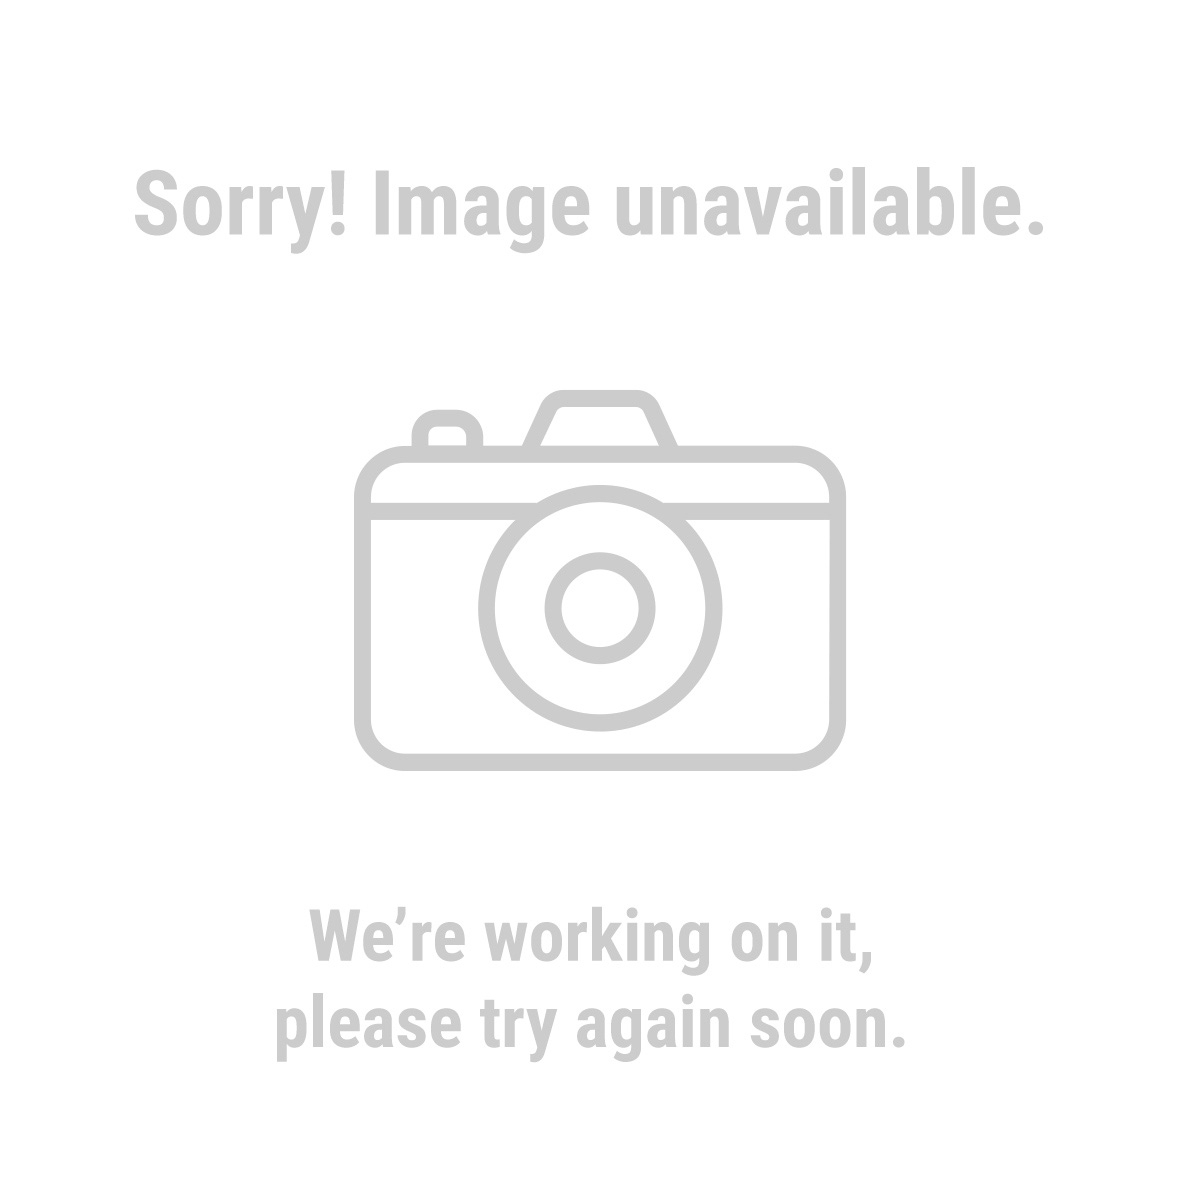 HARDY 99581 Riding/Stable Work Gloves, Medium